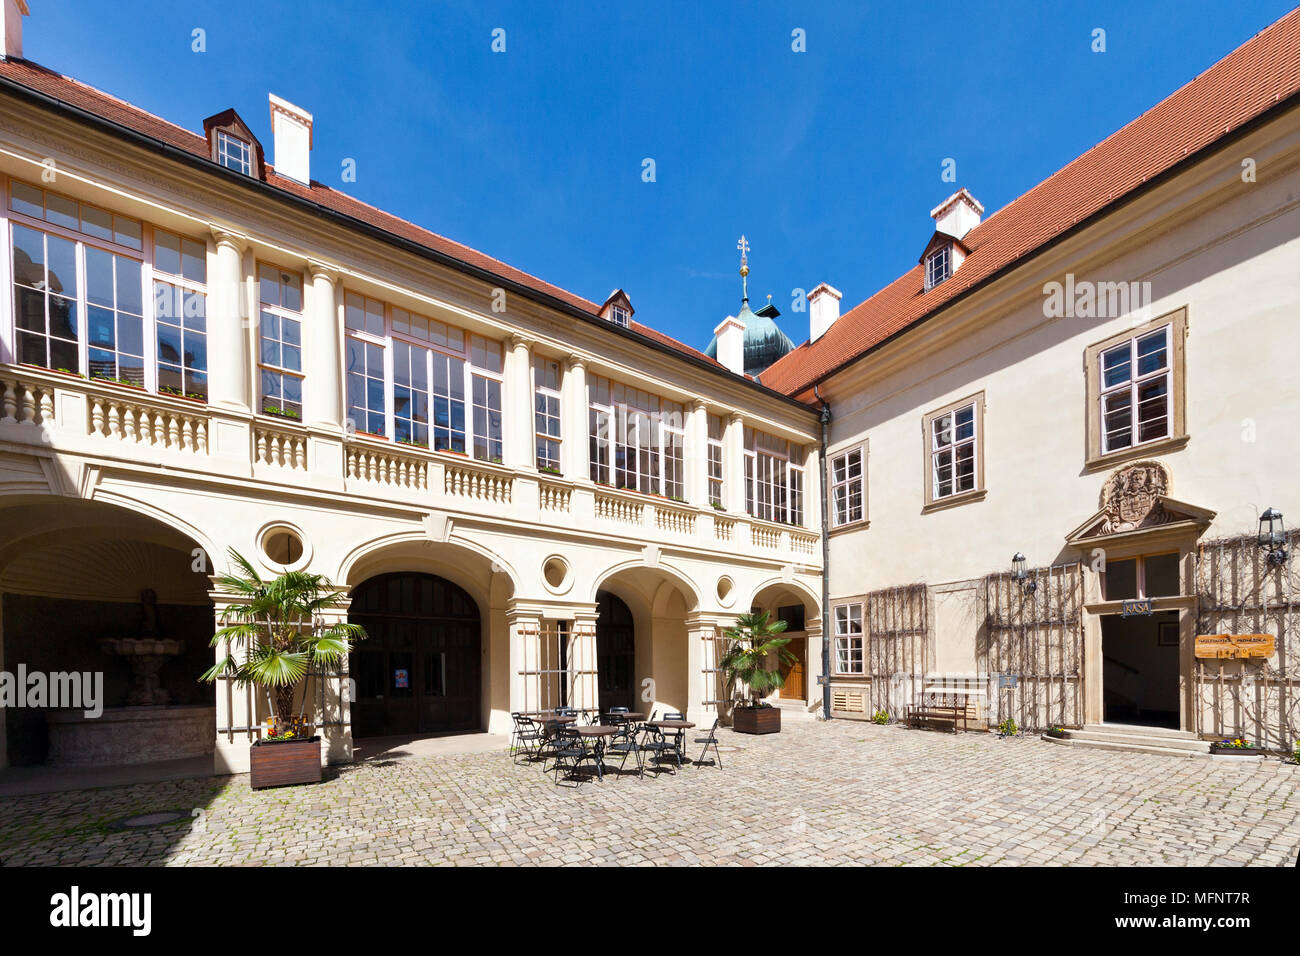 barokní zamek, Mnisek pod Brdy, Stredocesky kraj, Ceska republika / baroque castle Mnisek pod Brdy, Central Bohemian region, Czech republic Stock Photo